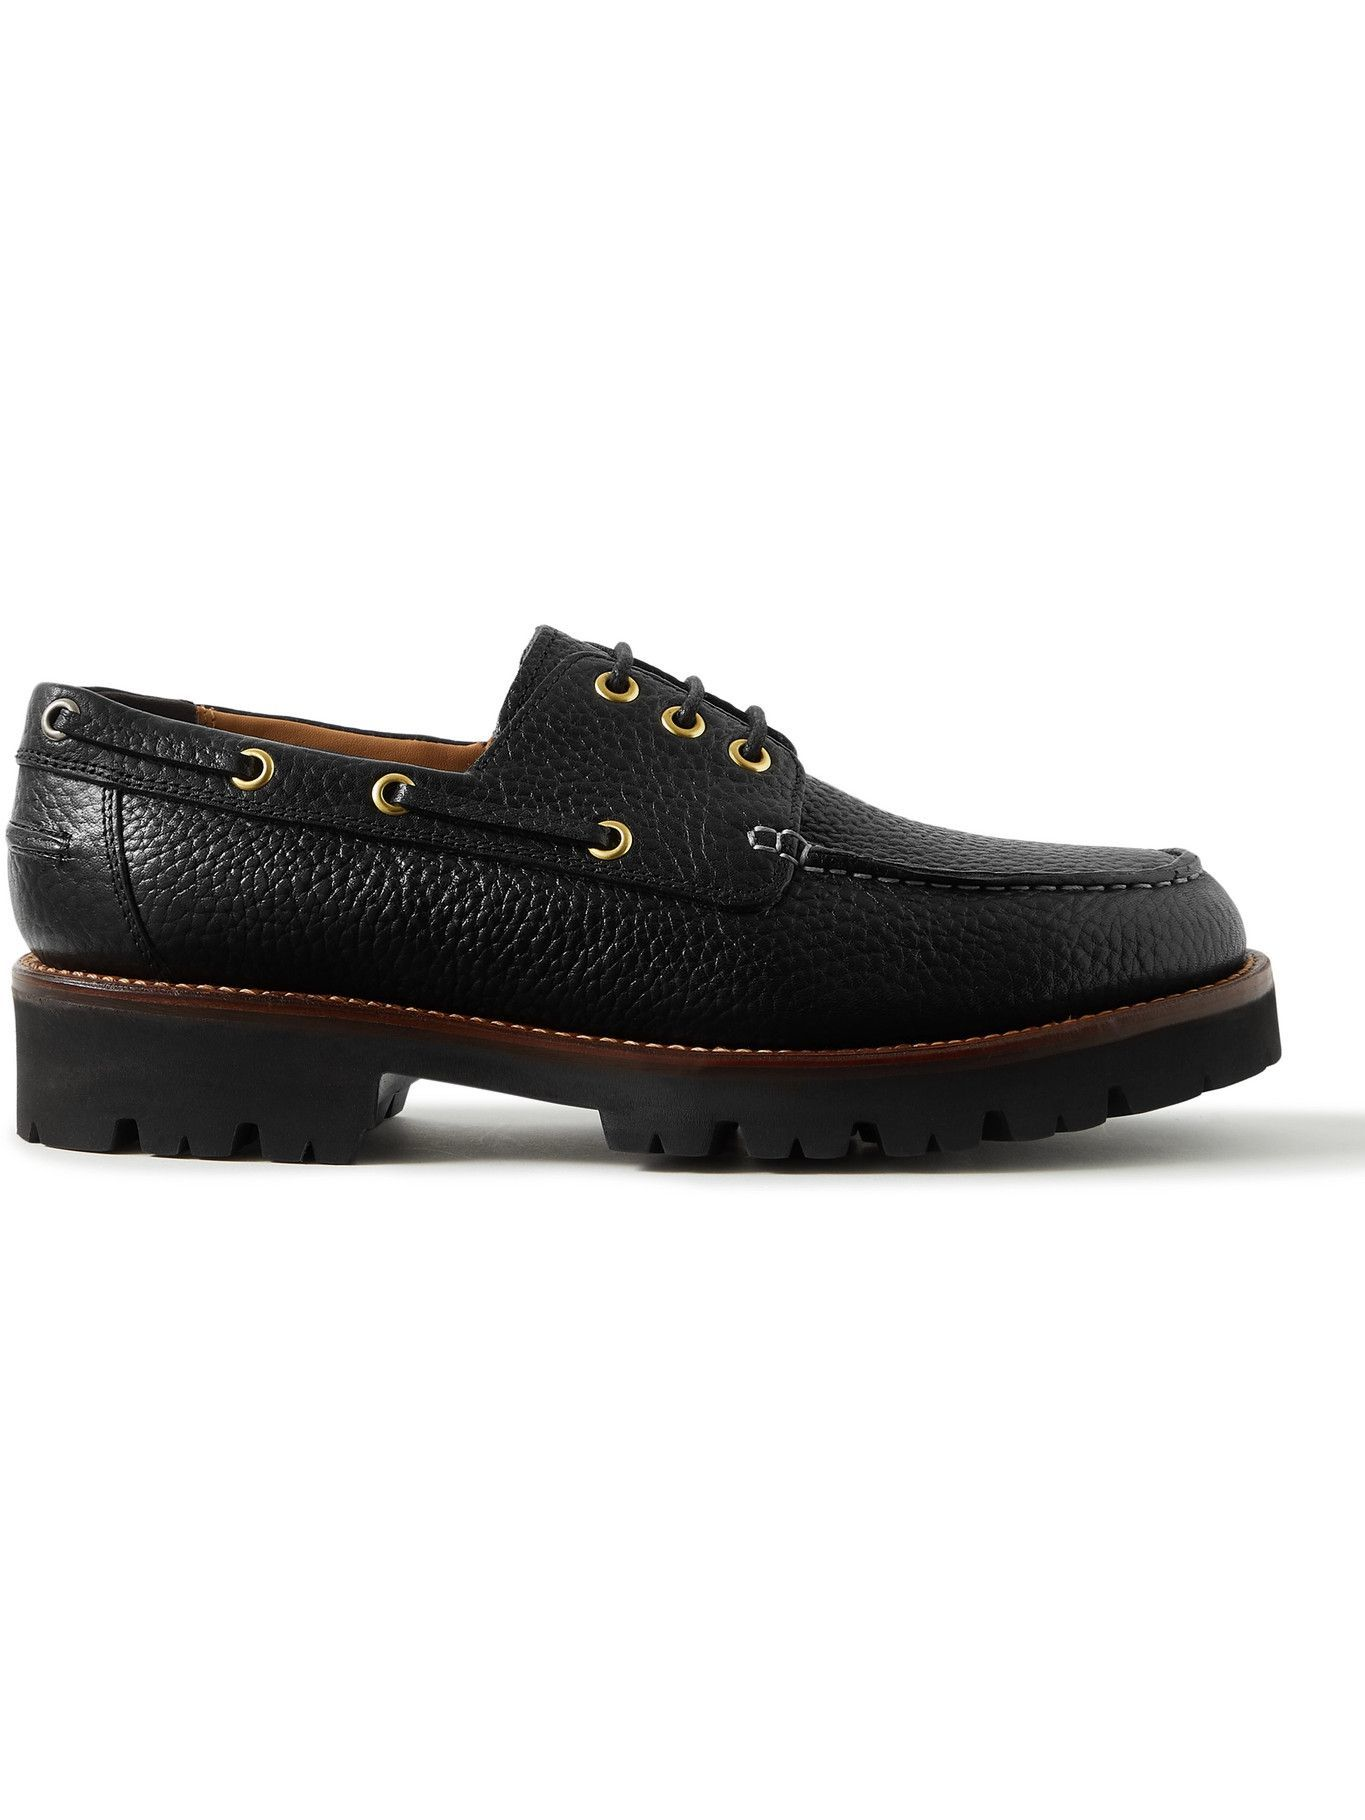 Photo: Grenson - Dempsey Full-Grain Leather Boat Shoes - Black